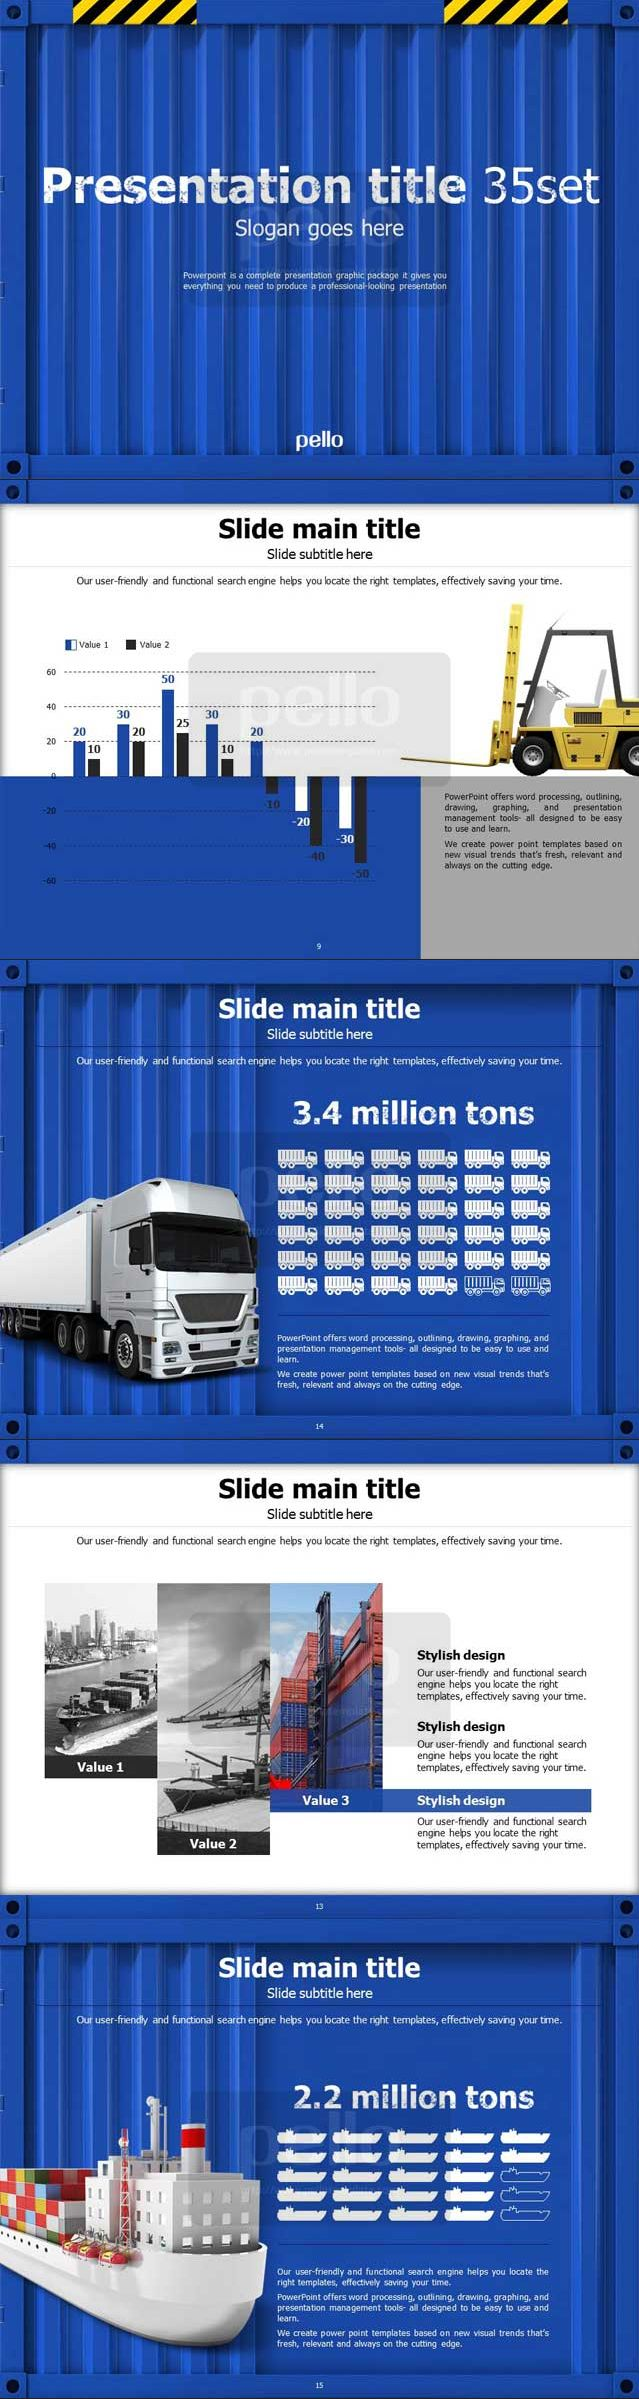 85 best good pello ppt templates images on pinterest ppt showcase your transport export import logistics and shipping business data in this clean and striking full hd powerpoint template by pello toneelgroepblik Gallery